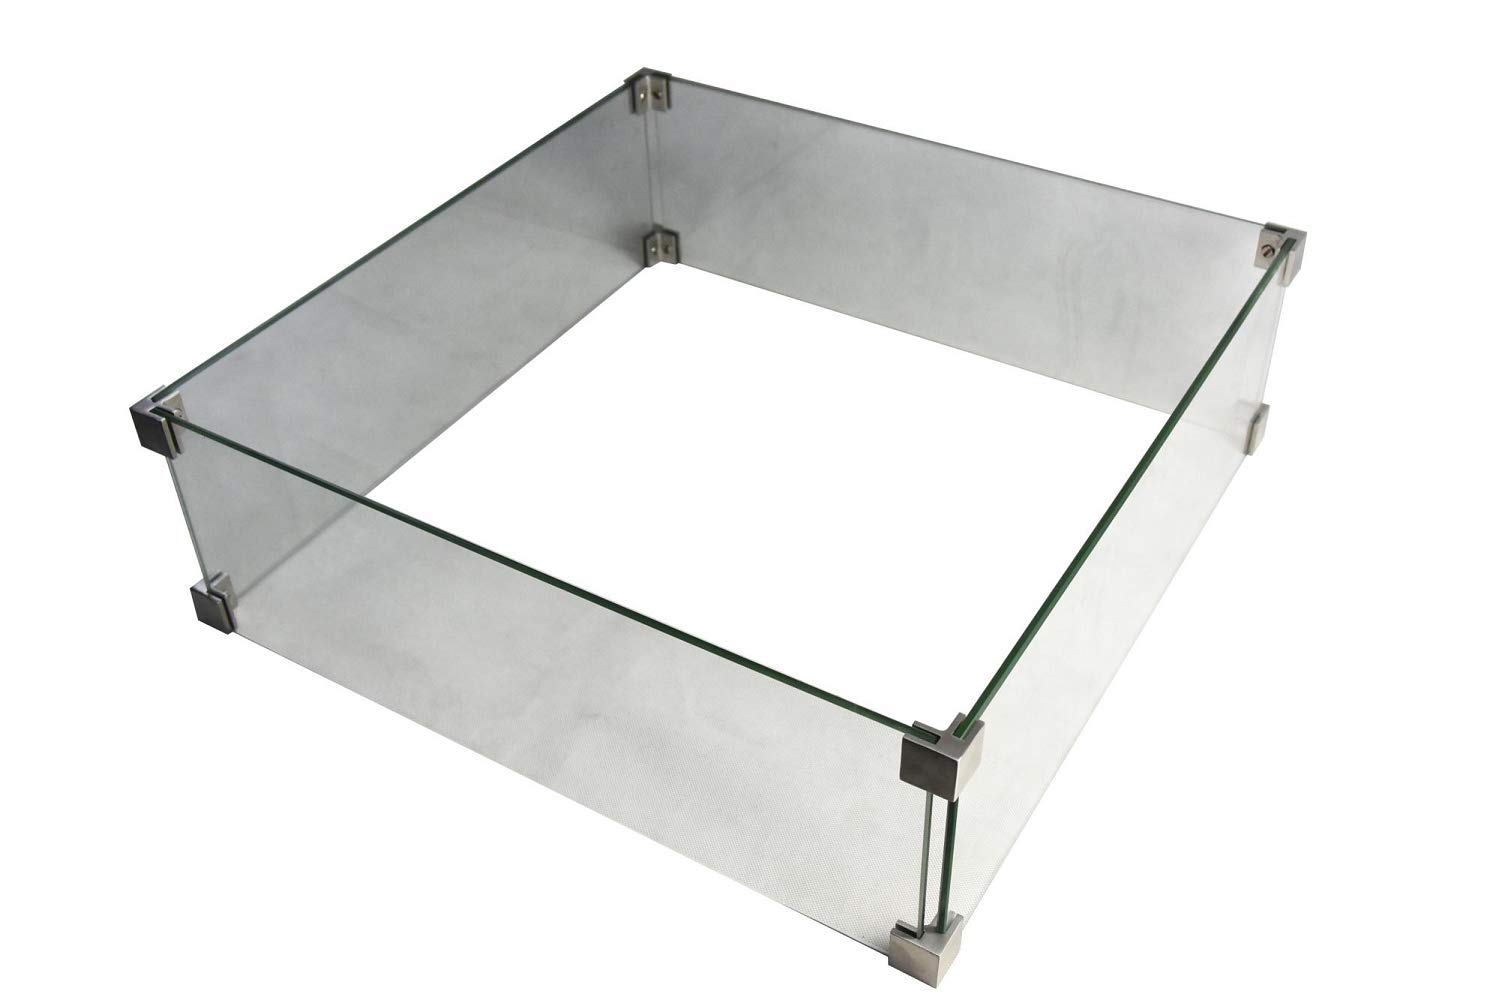 Elementi Outdoor Manhattan Fire Pit Table Tempered Glass ScreennSquare 22 x 22 x 7 inches Heavy Duty Firepit Accessory Wind Screen, Clear